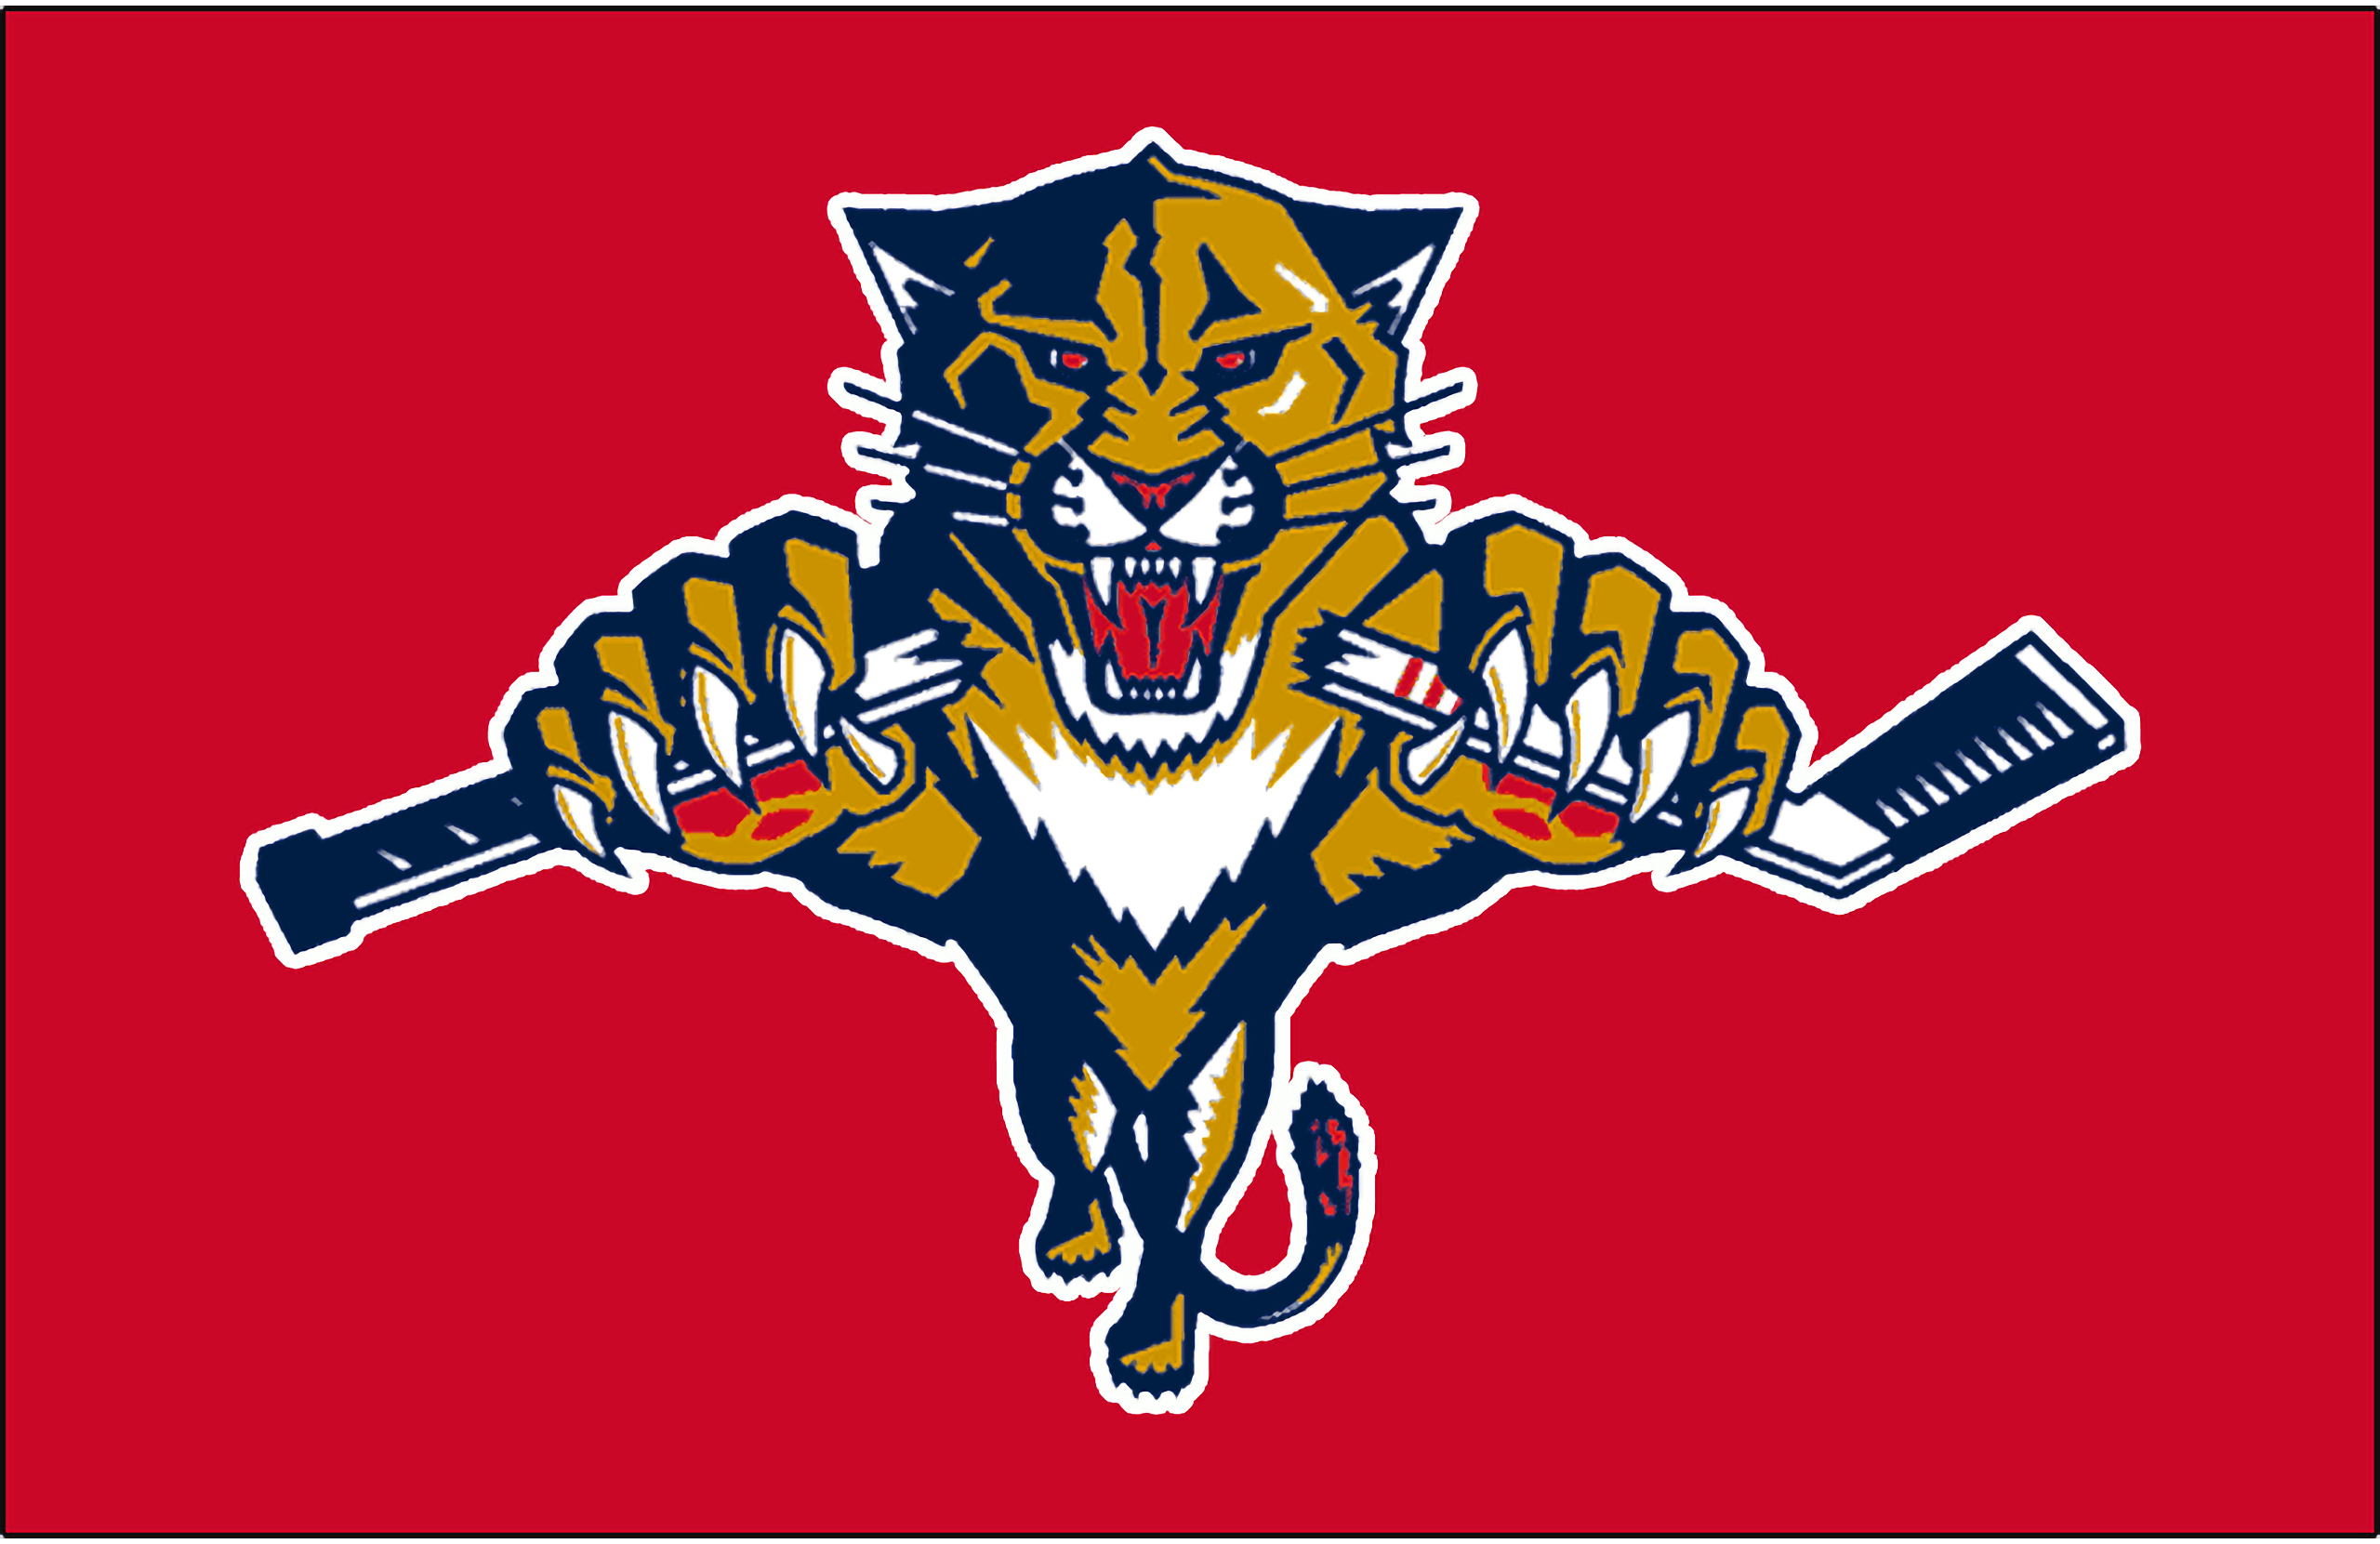 2560x1661 Florida Panthers HD Wallpaper | Background Image | 2560x1661 ...